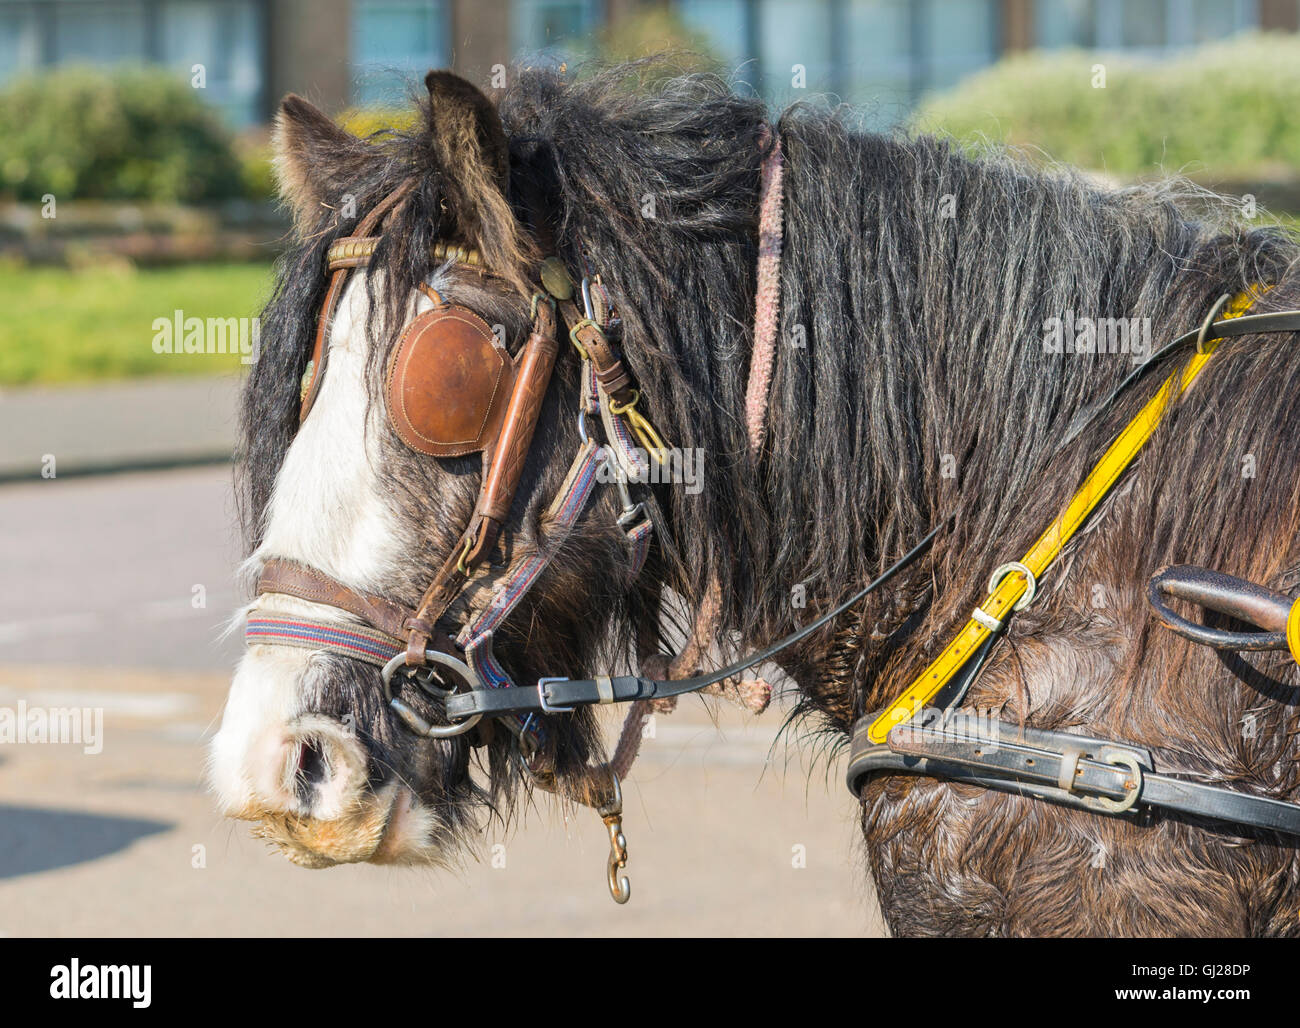 Gypsy horse head looking neglected and dirty. - Stock Image